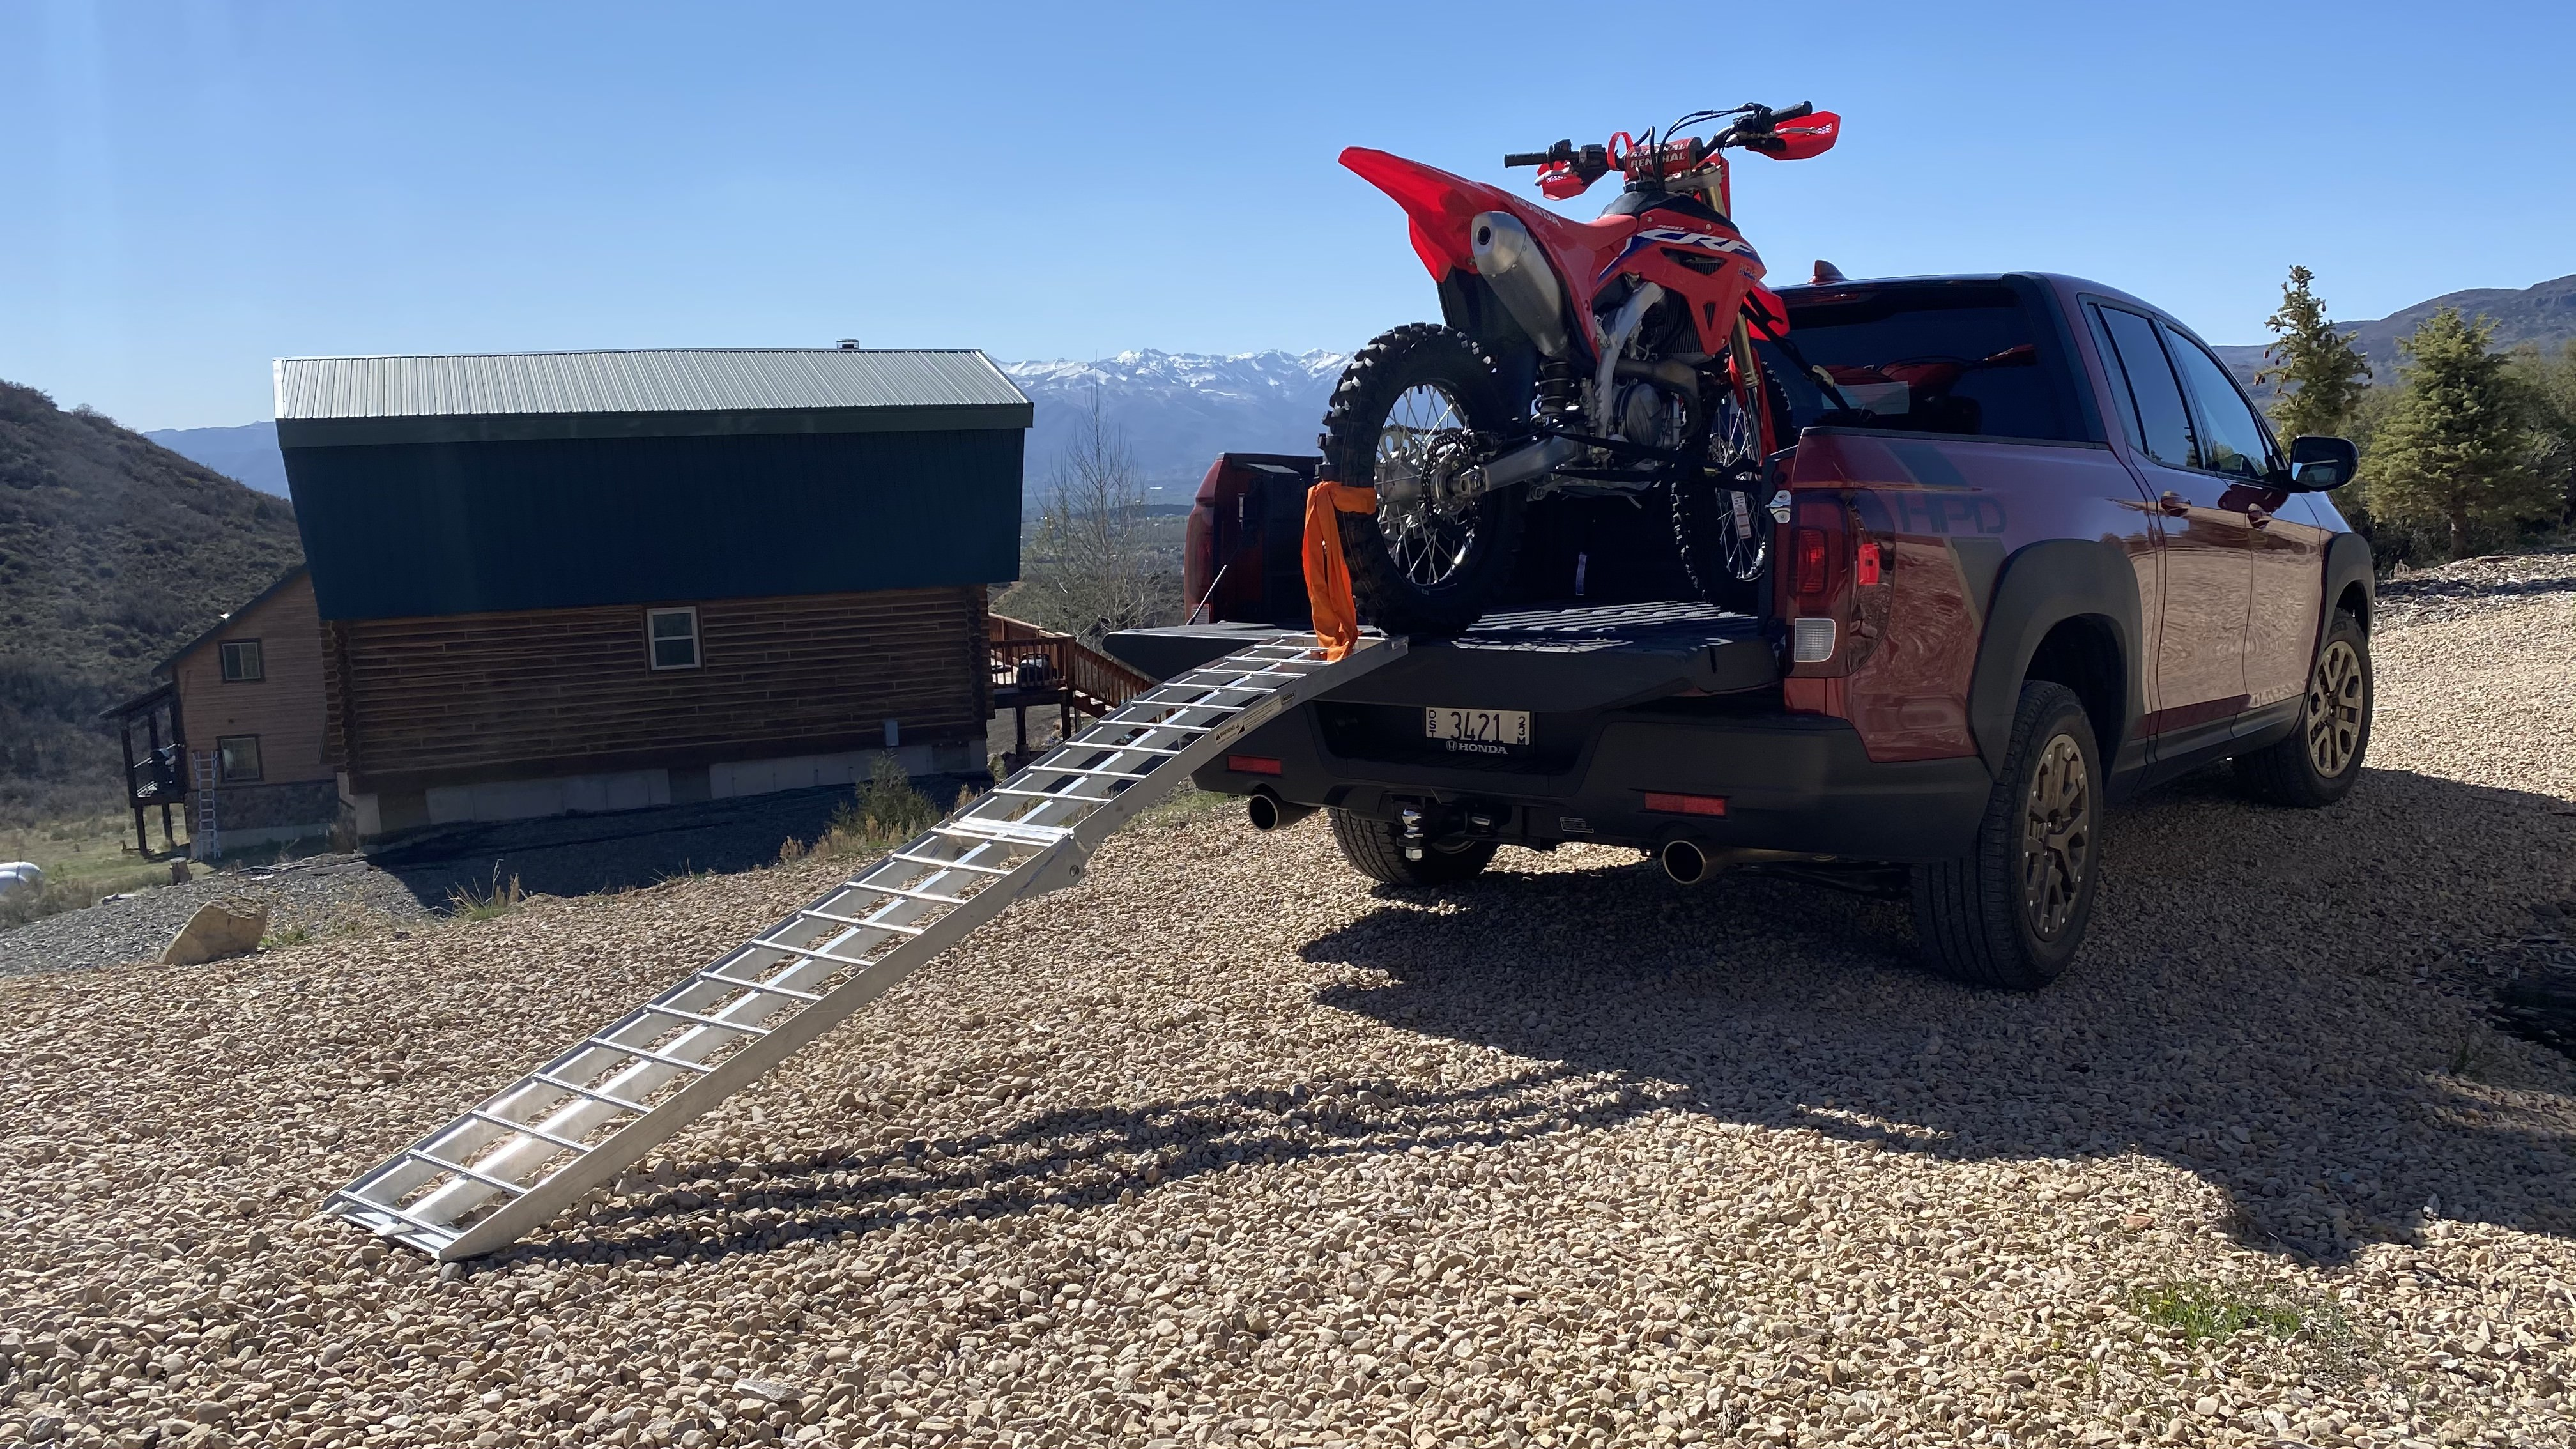 Unloading the CRF450RX.